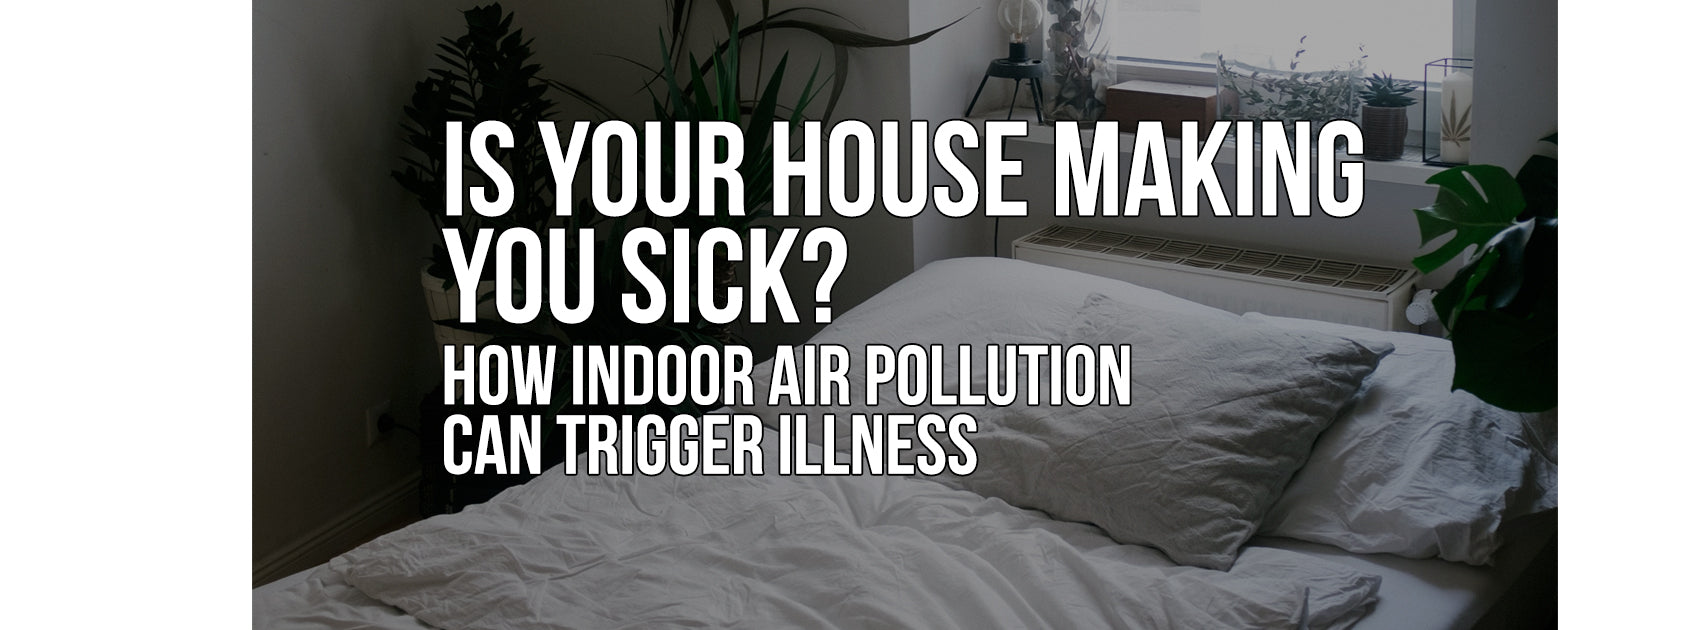 Is Your House Making You Sick? How Indoor Air Pollution Can Trigger Illness